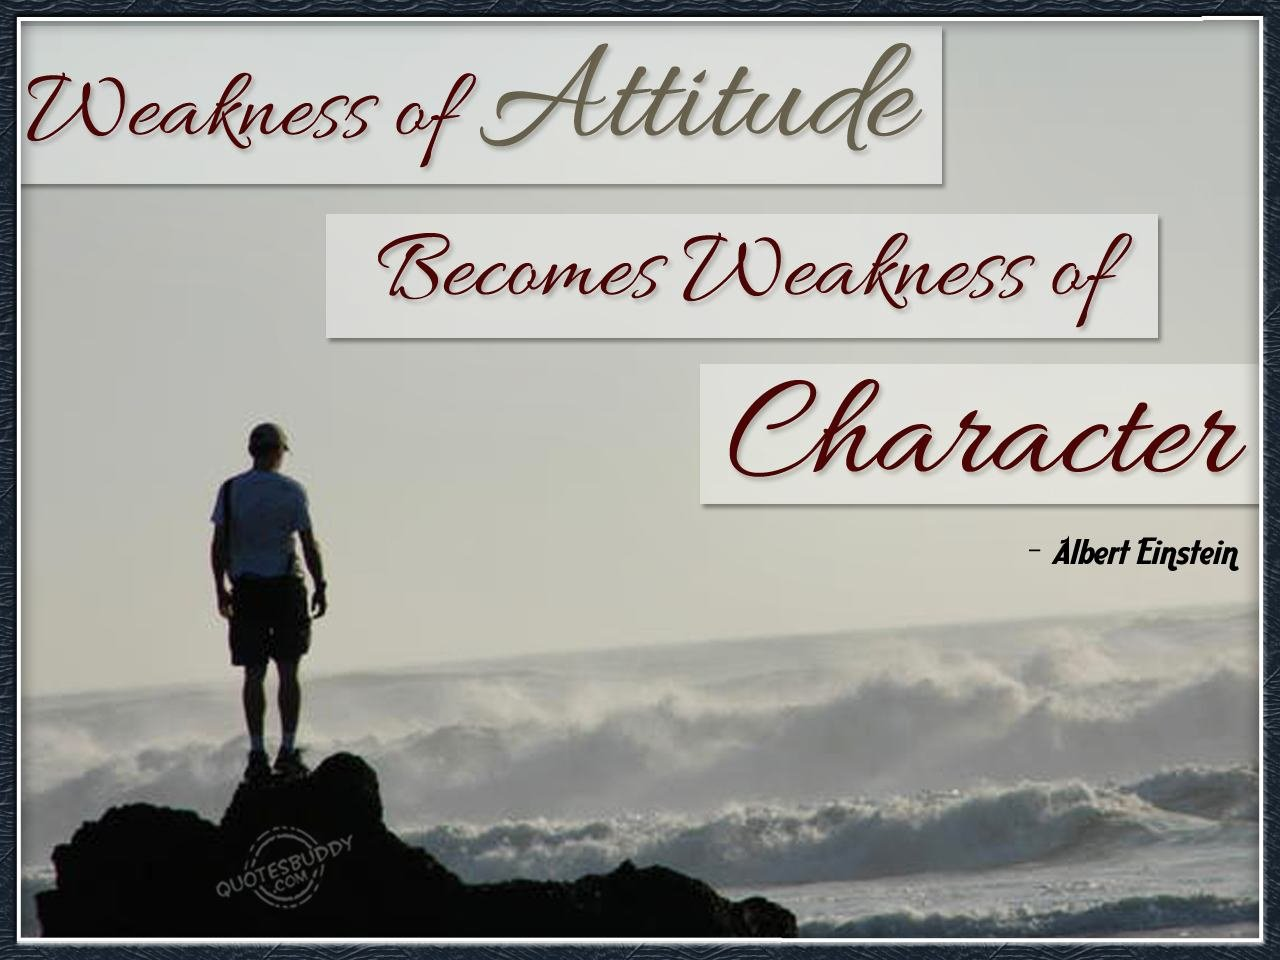 Weakness Of Attitude Becomes Weakness Of Character - Alberts Einstein